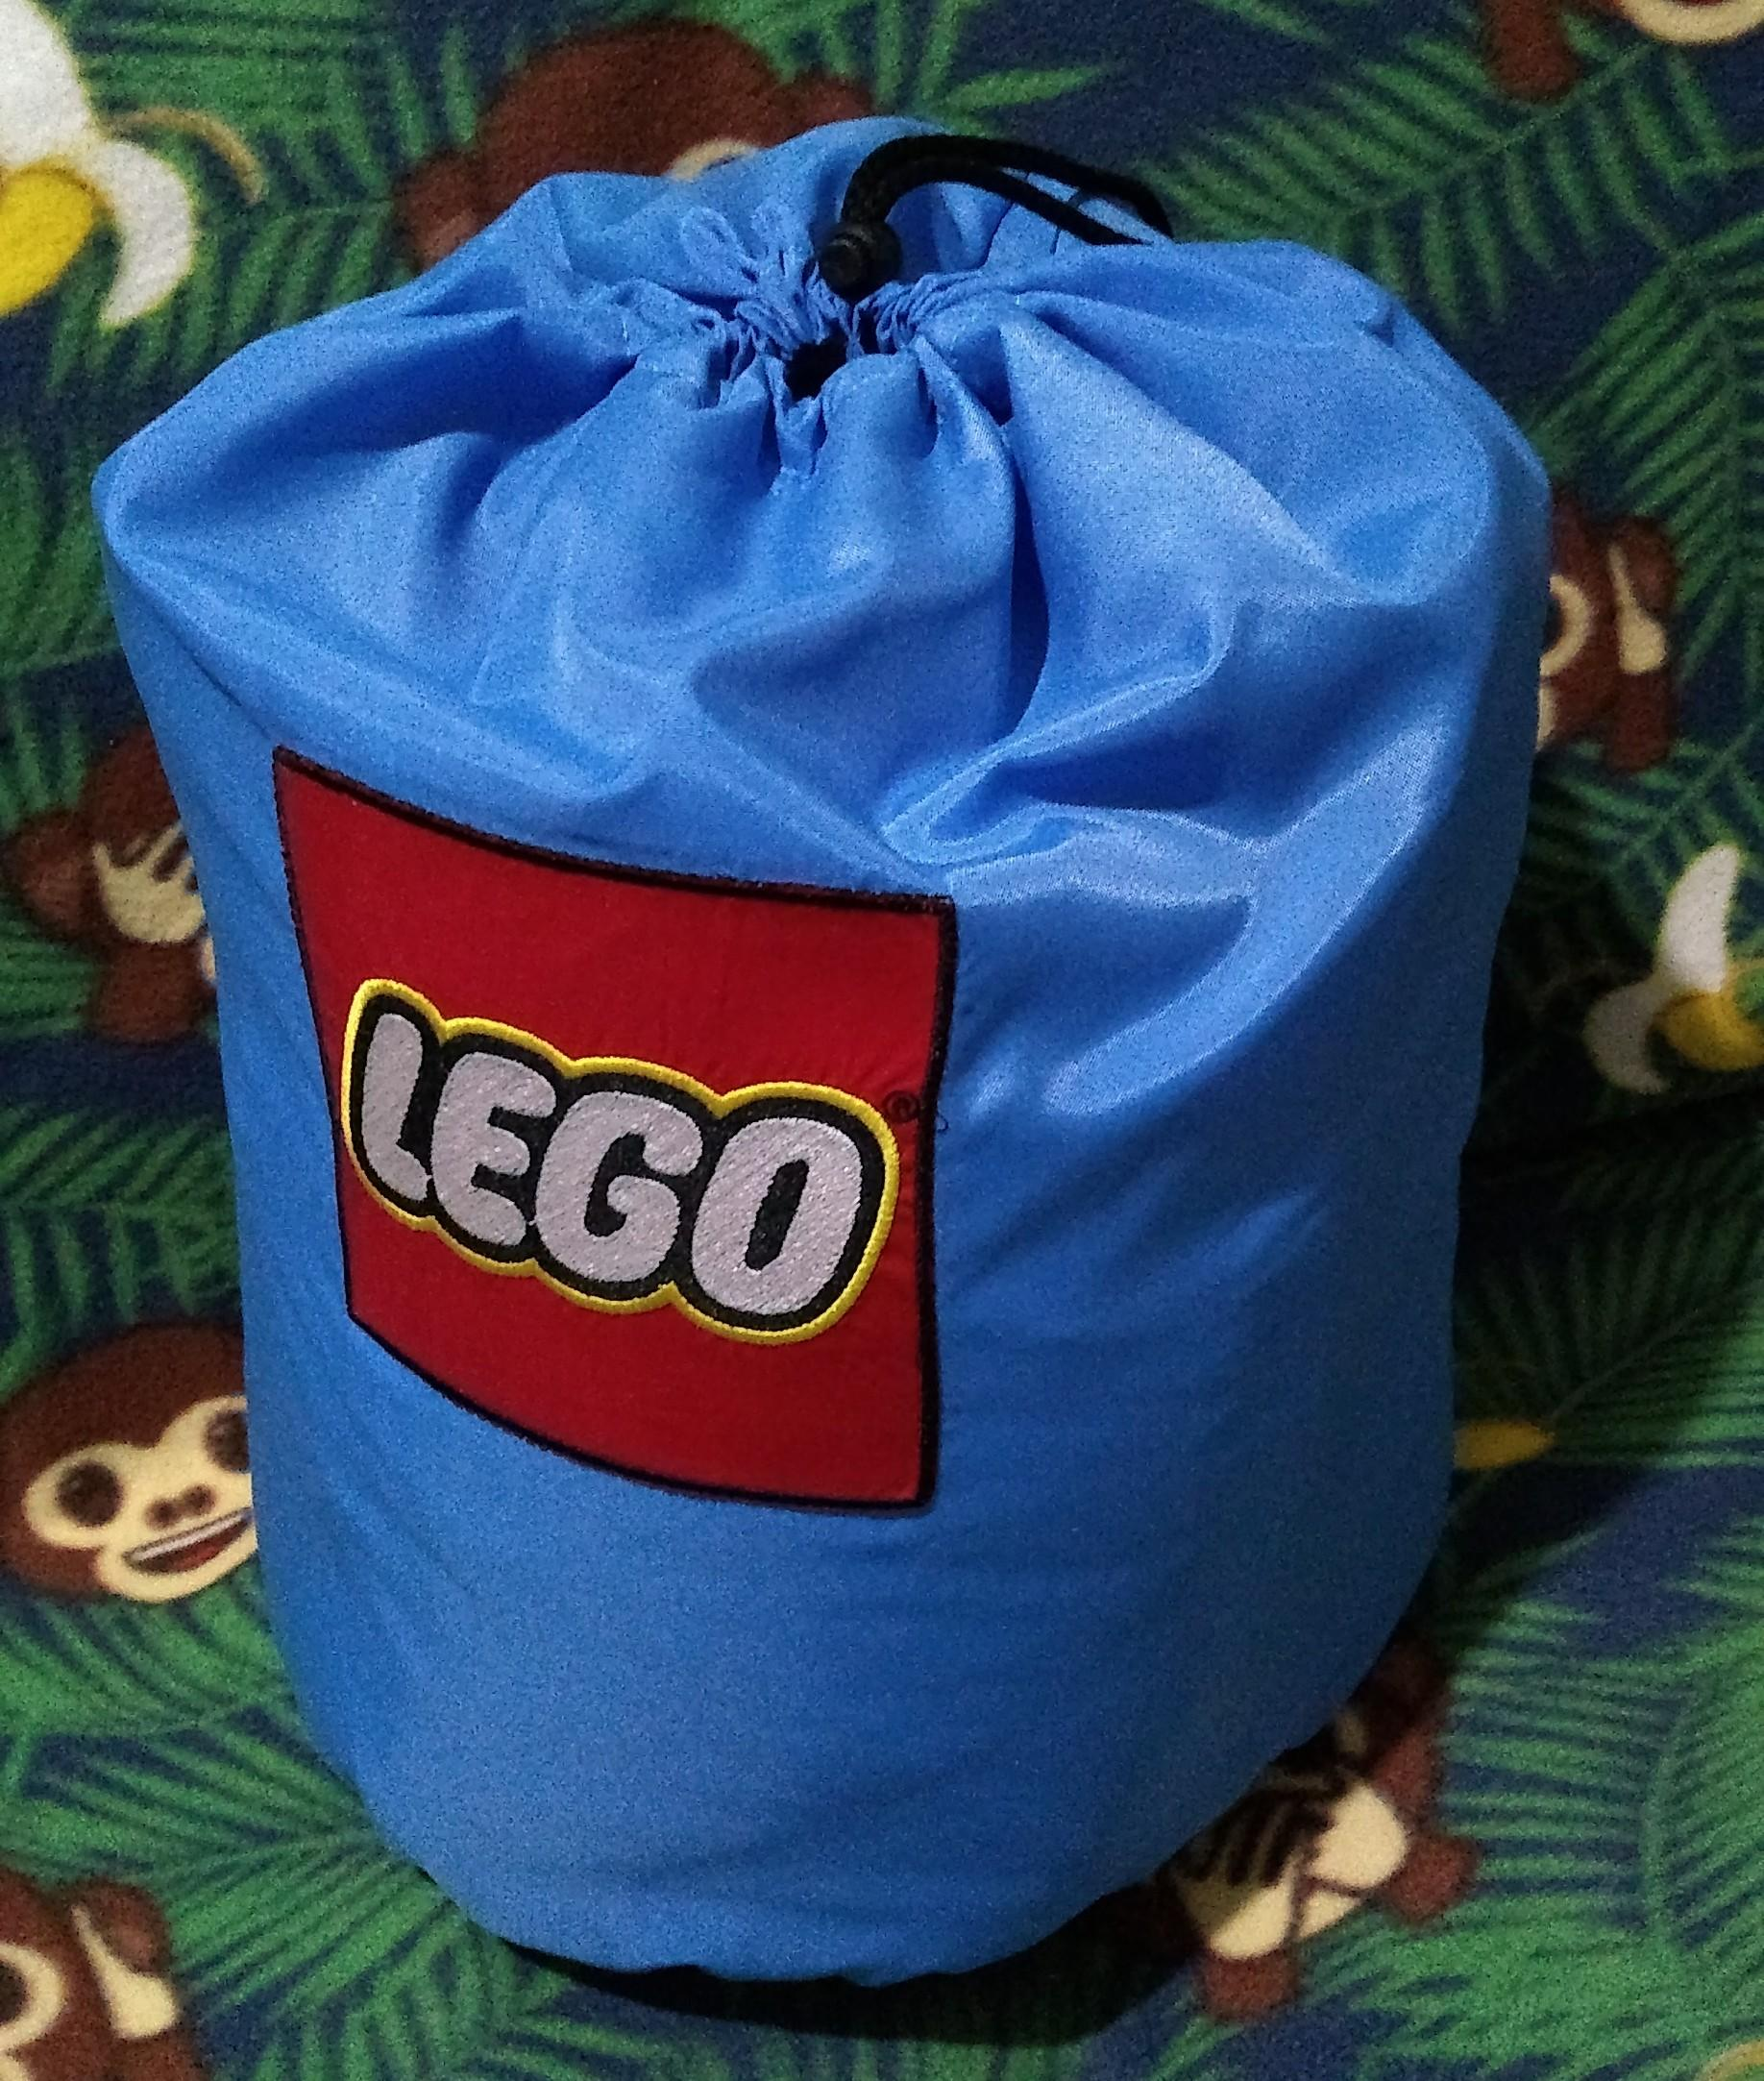 Lego toy bag